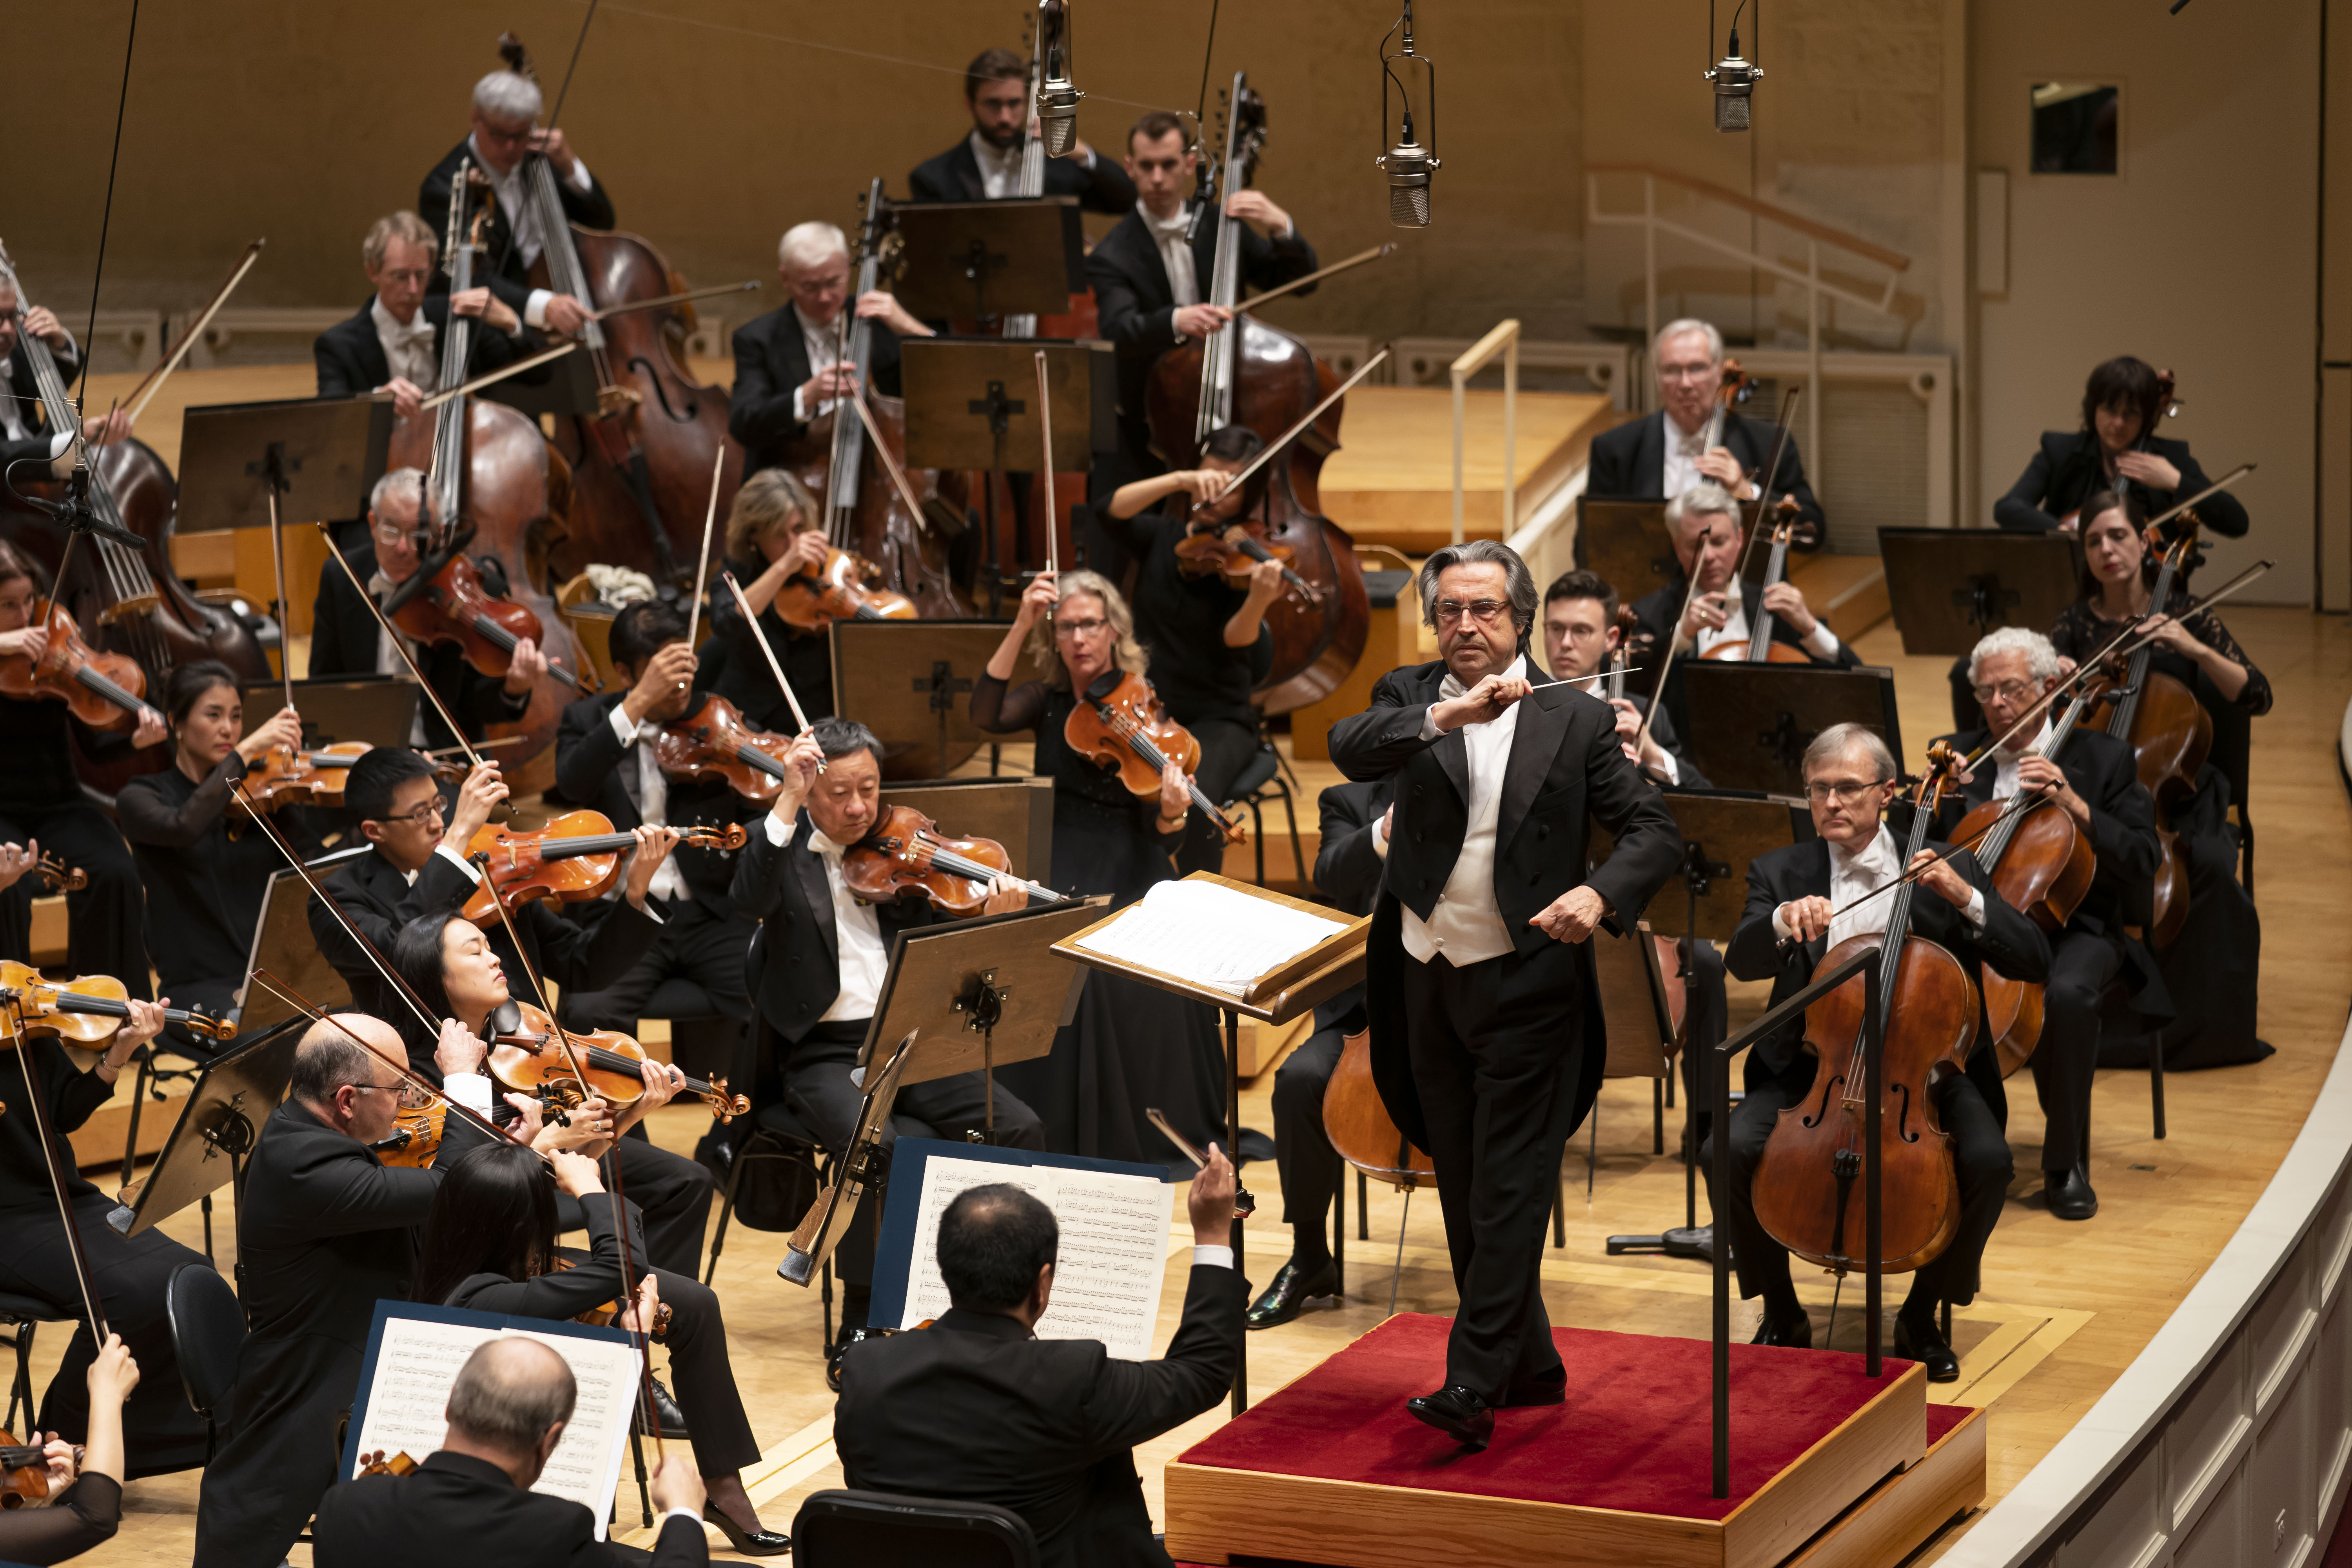 Maestro Riccardo Muti leads the Chicago Symphony Orchestra in an all-Beethoven program in September 2019 at Symphony Center. His appointment as music director of the CSO in 2010 was the key event of the past decade in Chicago's classical music scene.